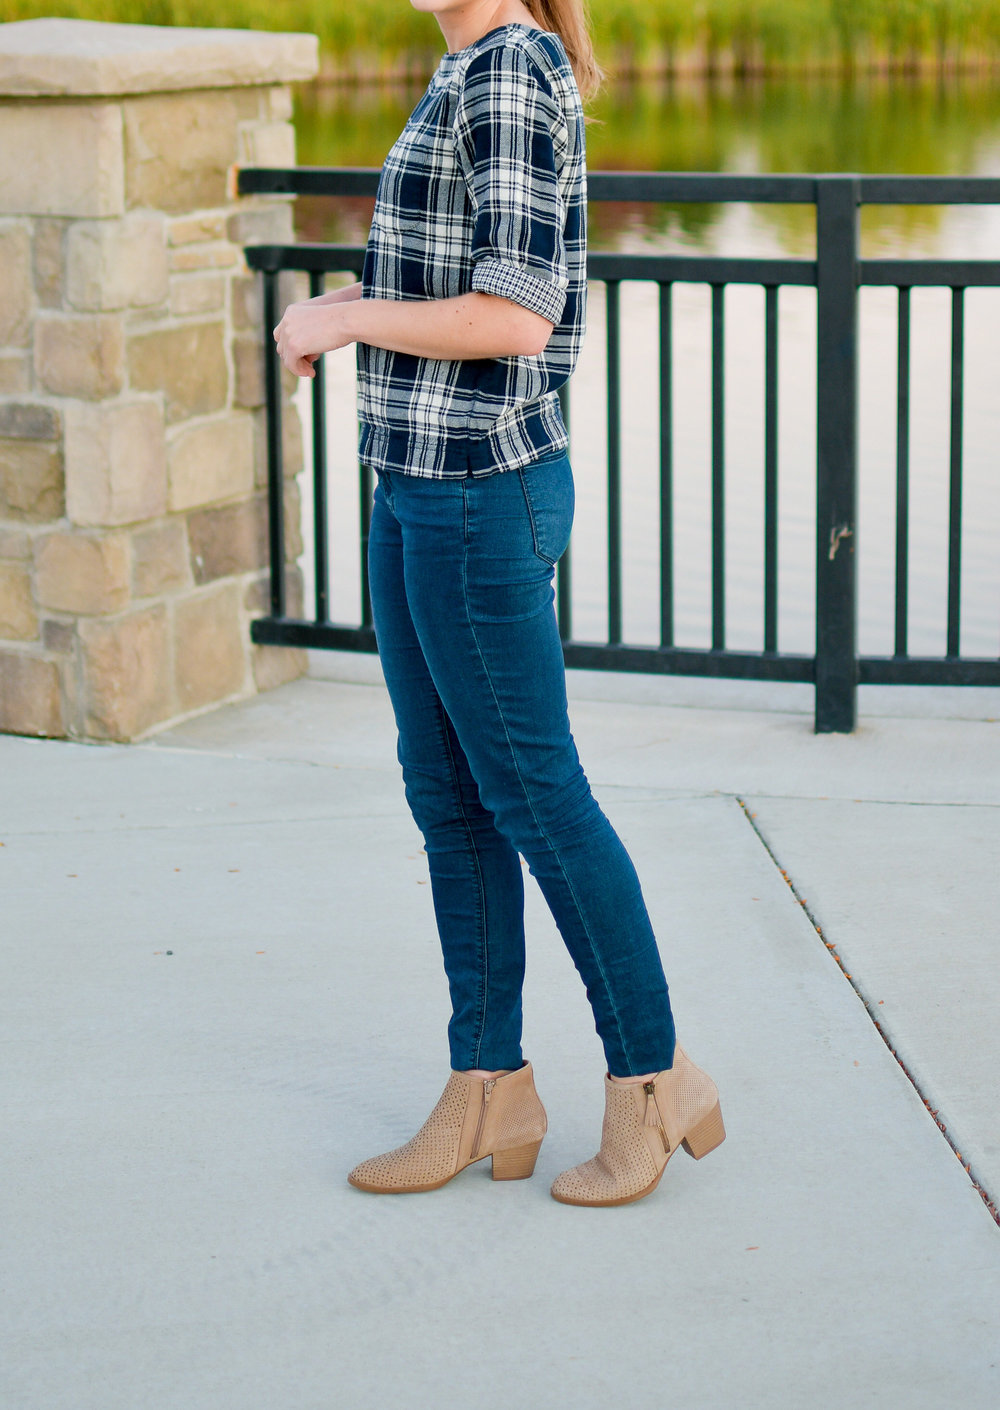 Earth Pineberry ankle boots fall outfit — Cotton Cashmere Cat Hair